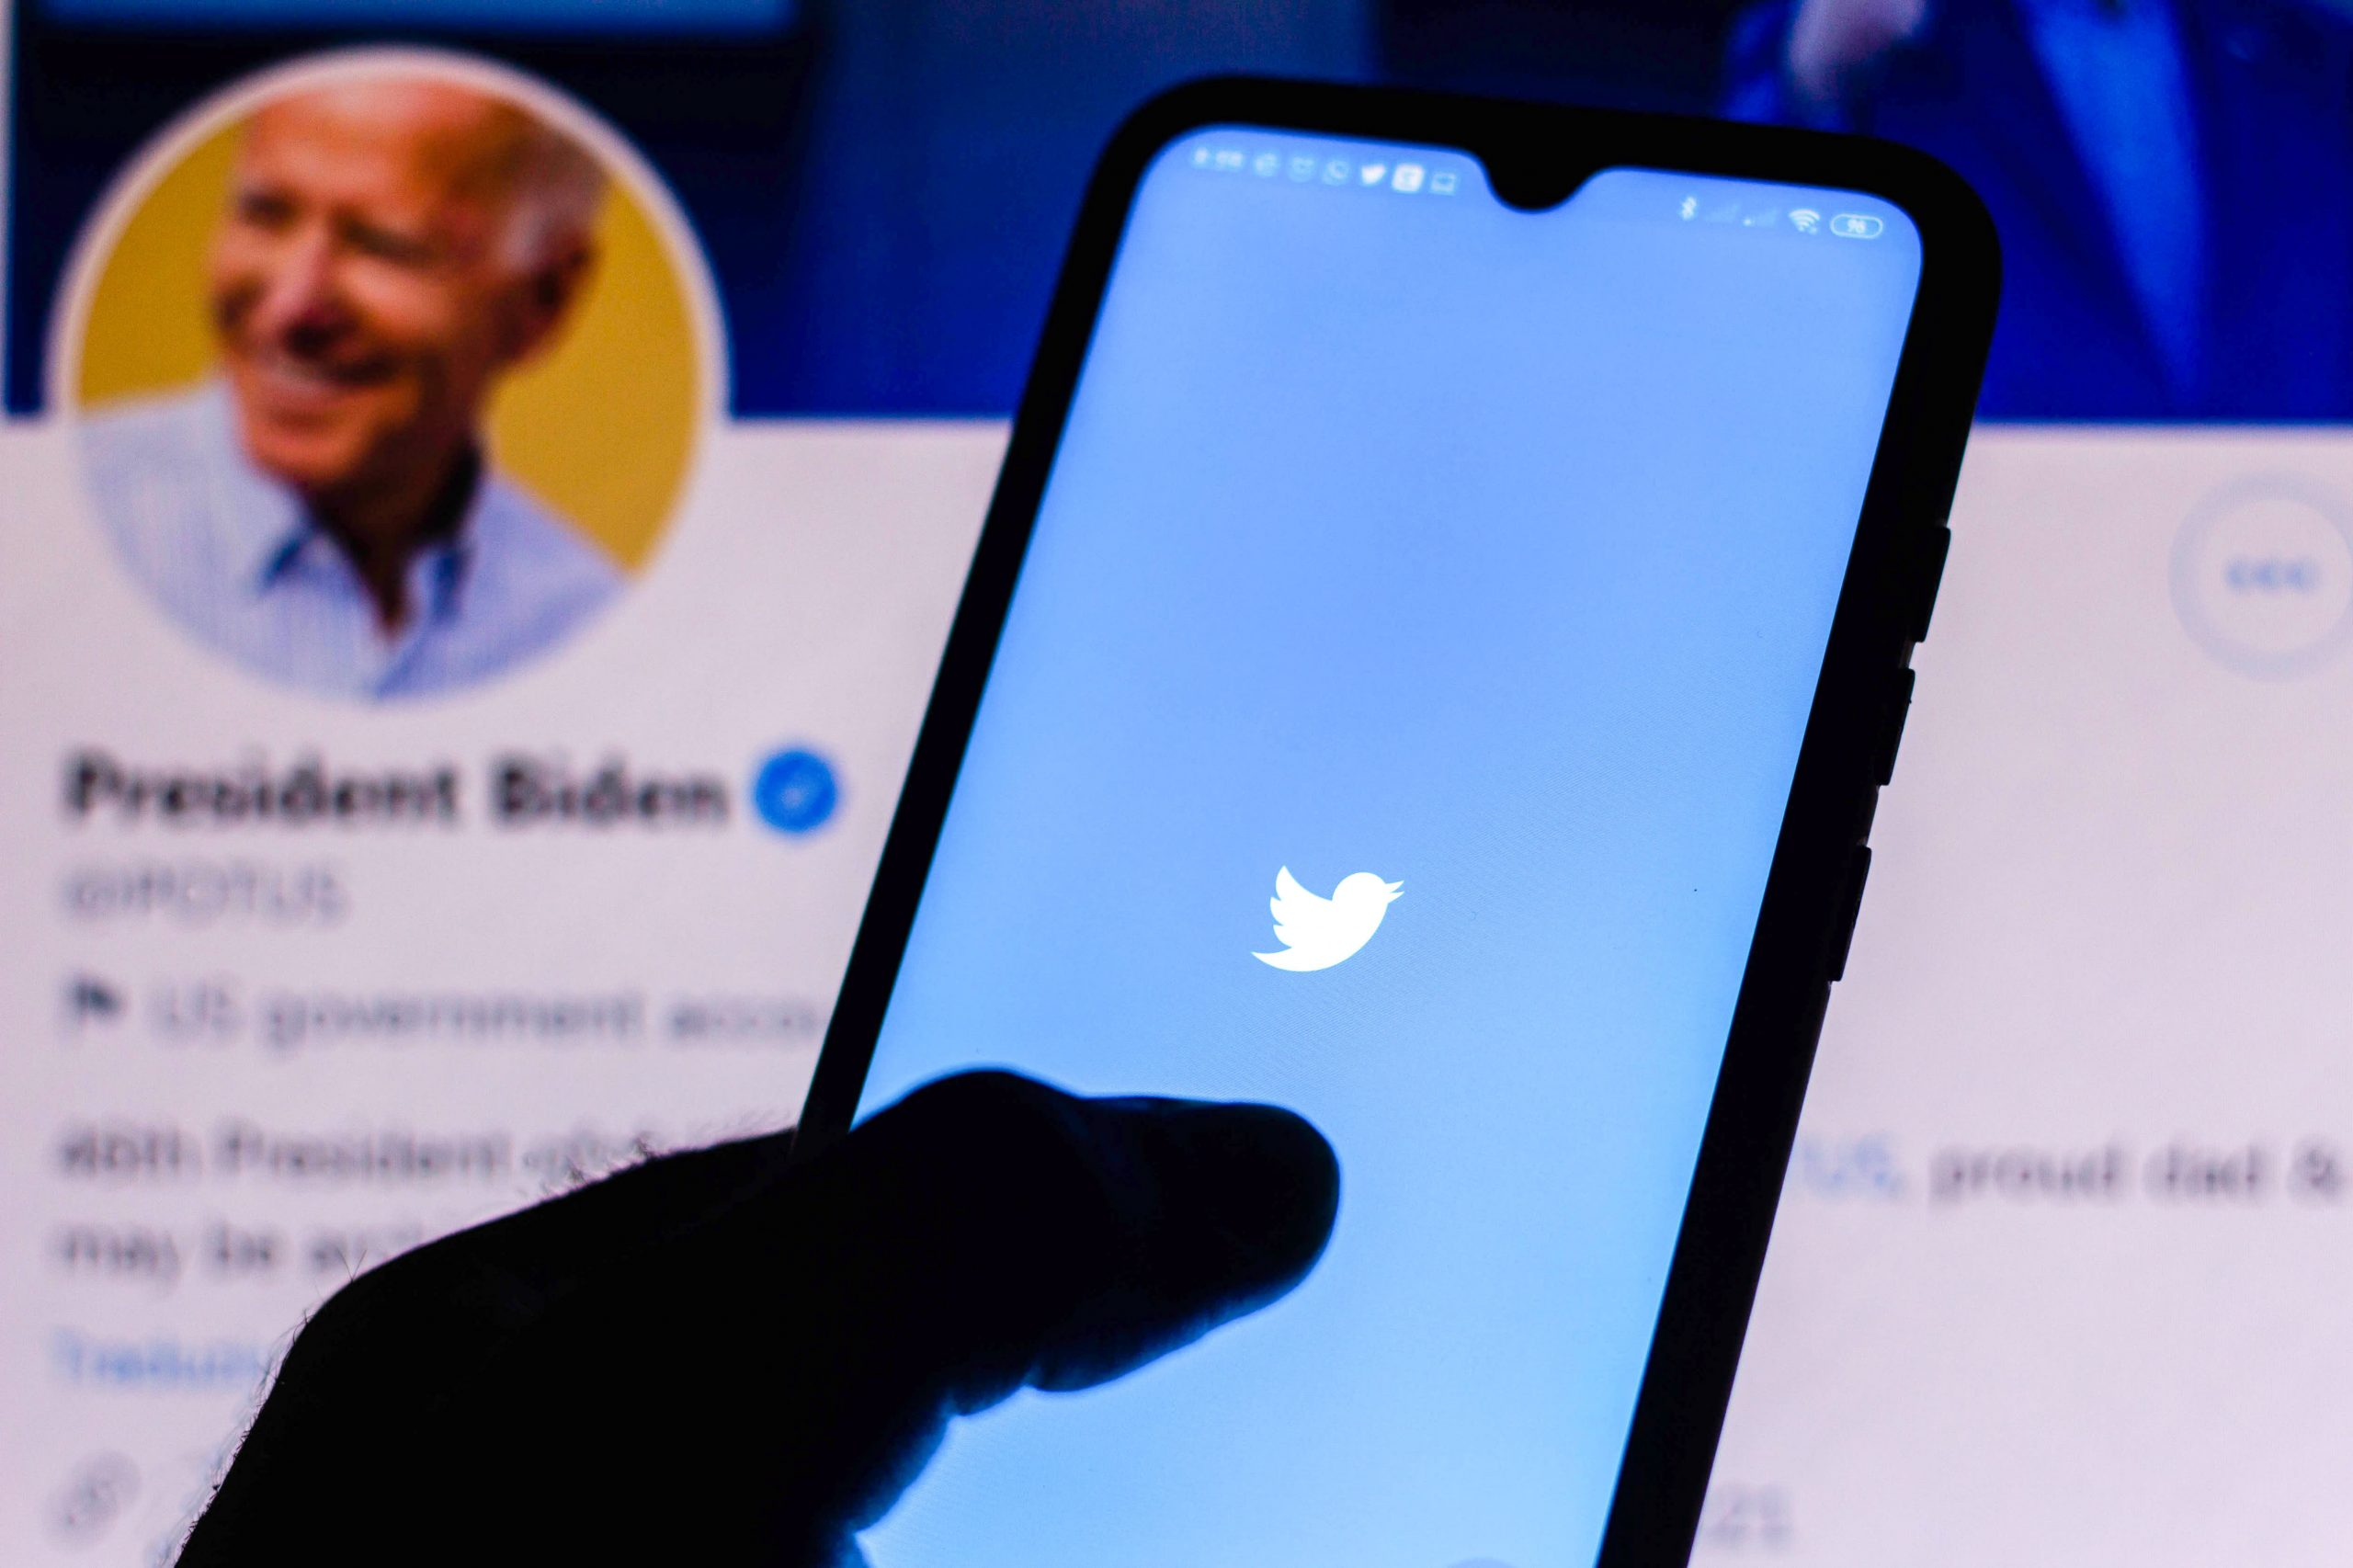 Man busted in Twitter hack of Biden, Obama, Musk in bitcoin scam